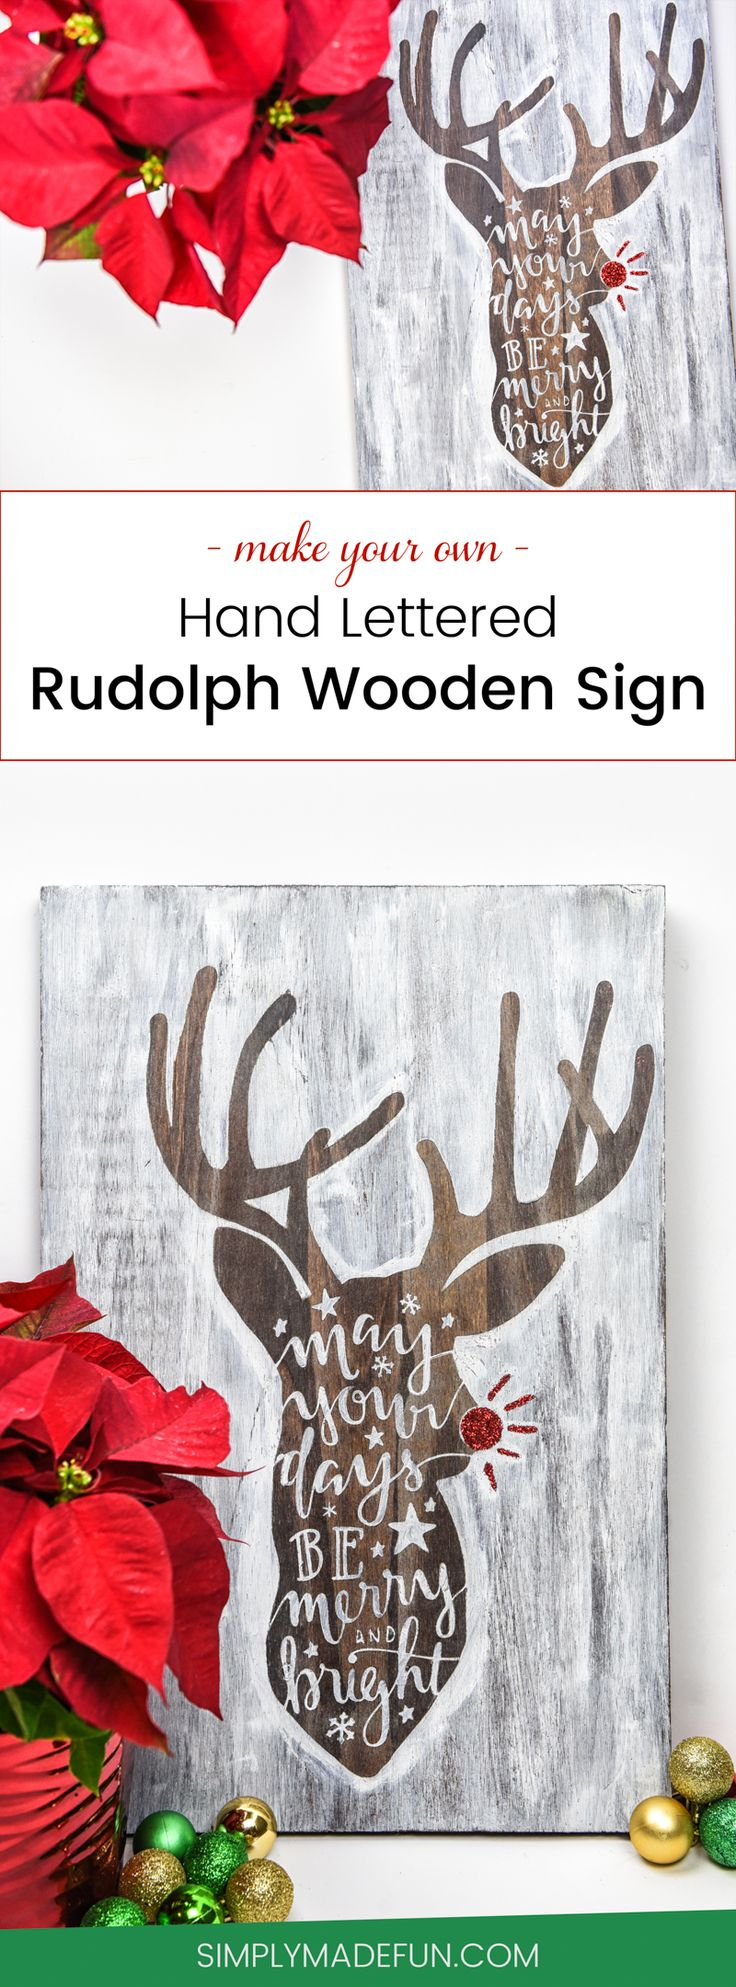 No christmas decorations until after thanksgiving - Make Your Own Hand Lettered Rudolph Wooden Sign Christmas D Corcountry